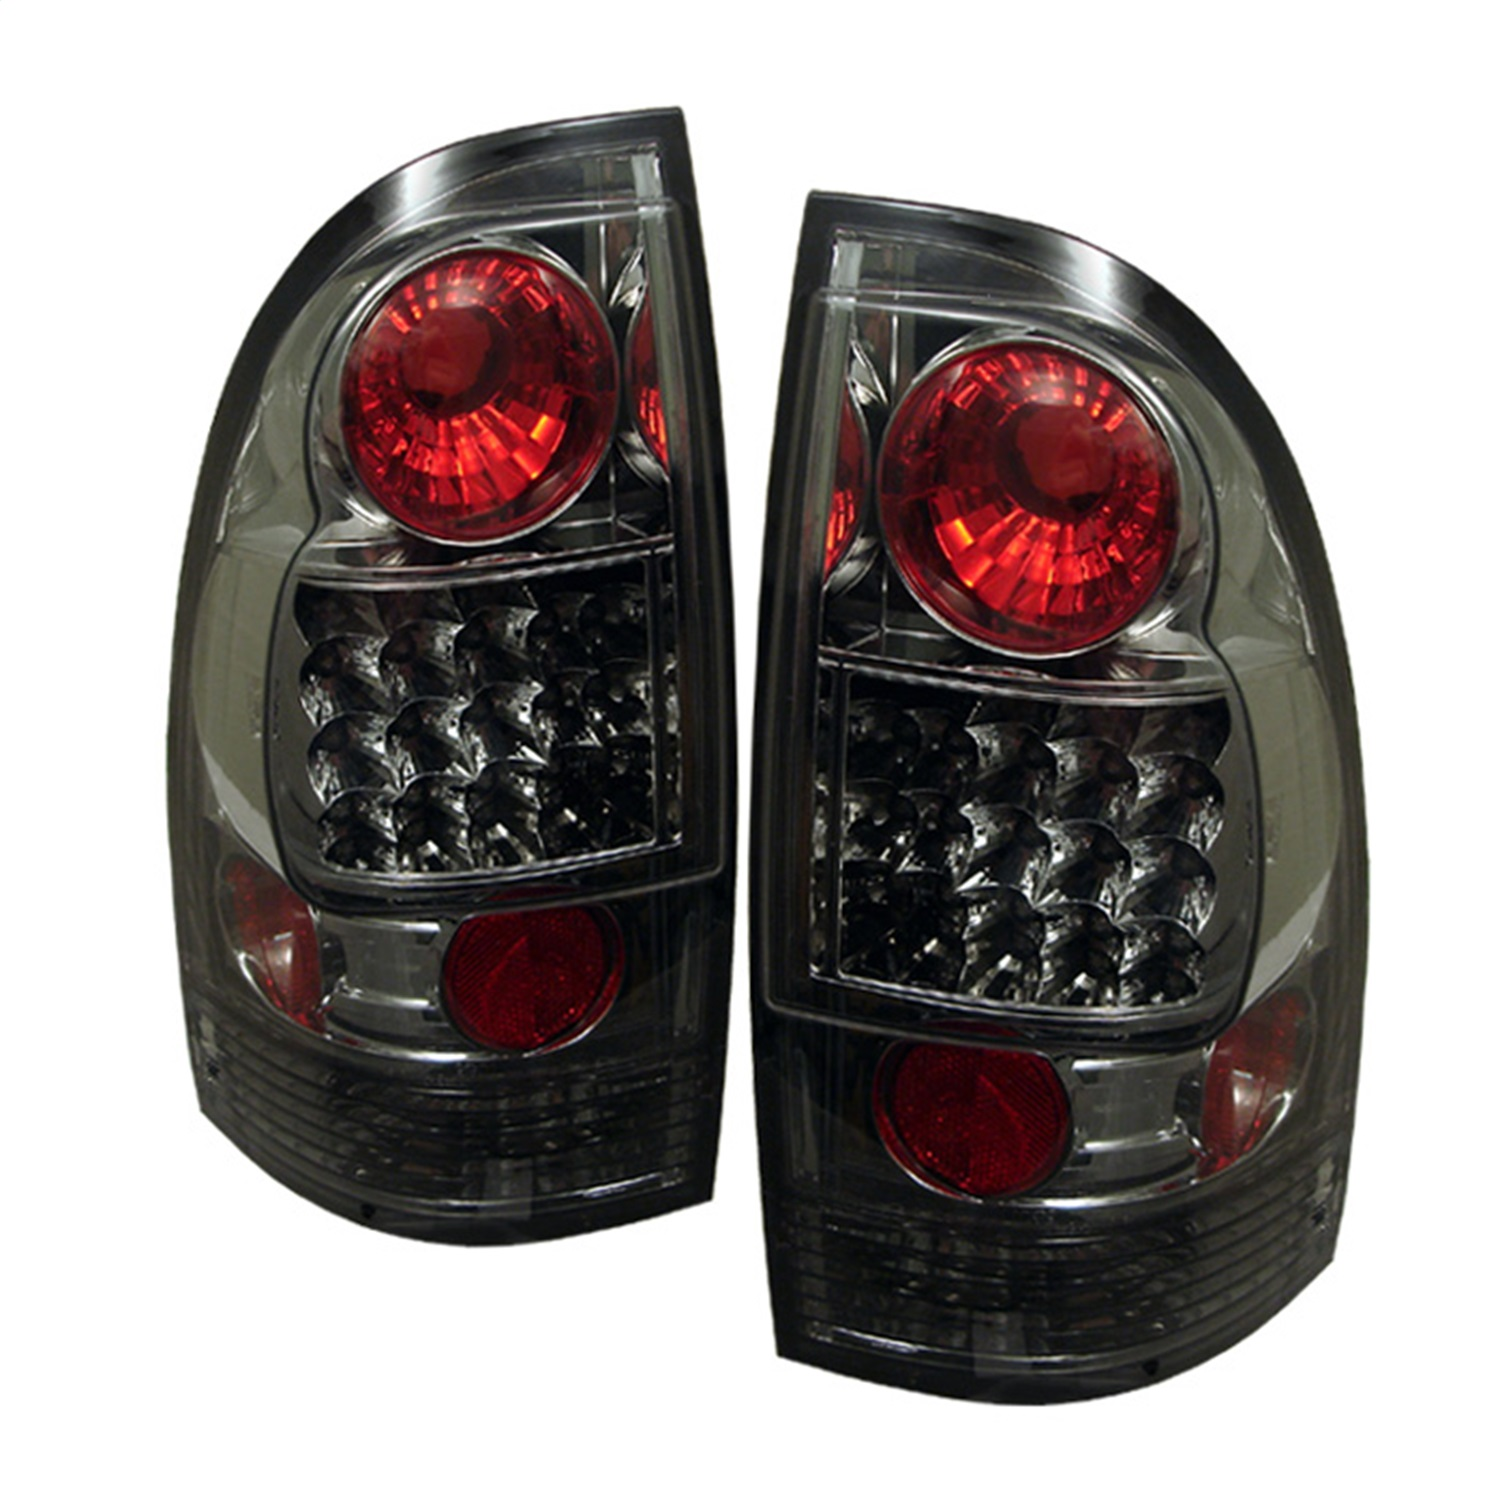 Spyder Auto 5007957 LED Tail Lights Fits 05-15 Tacoma